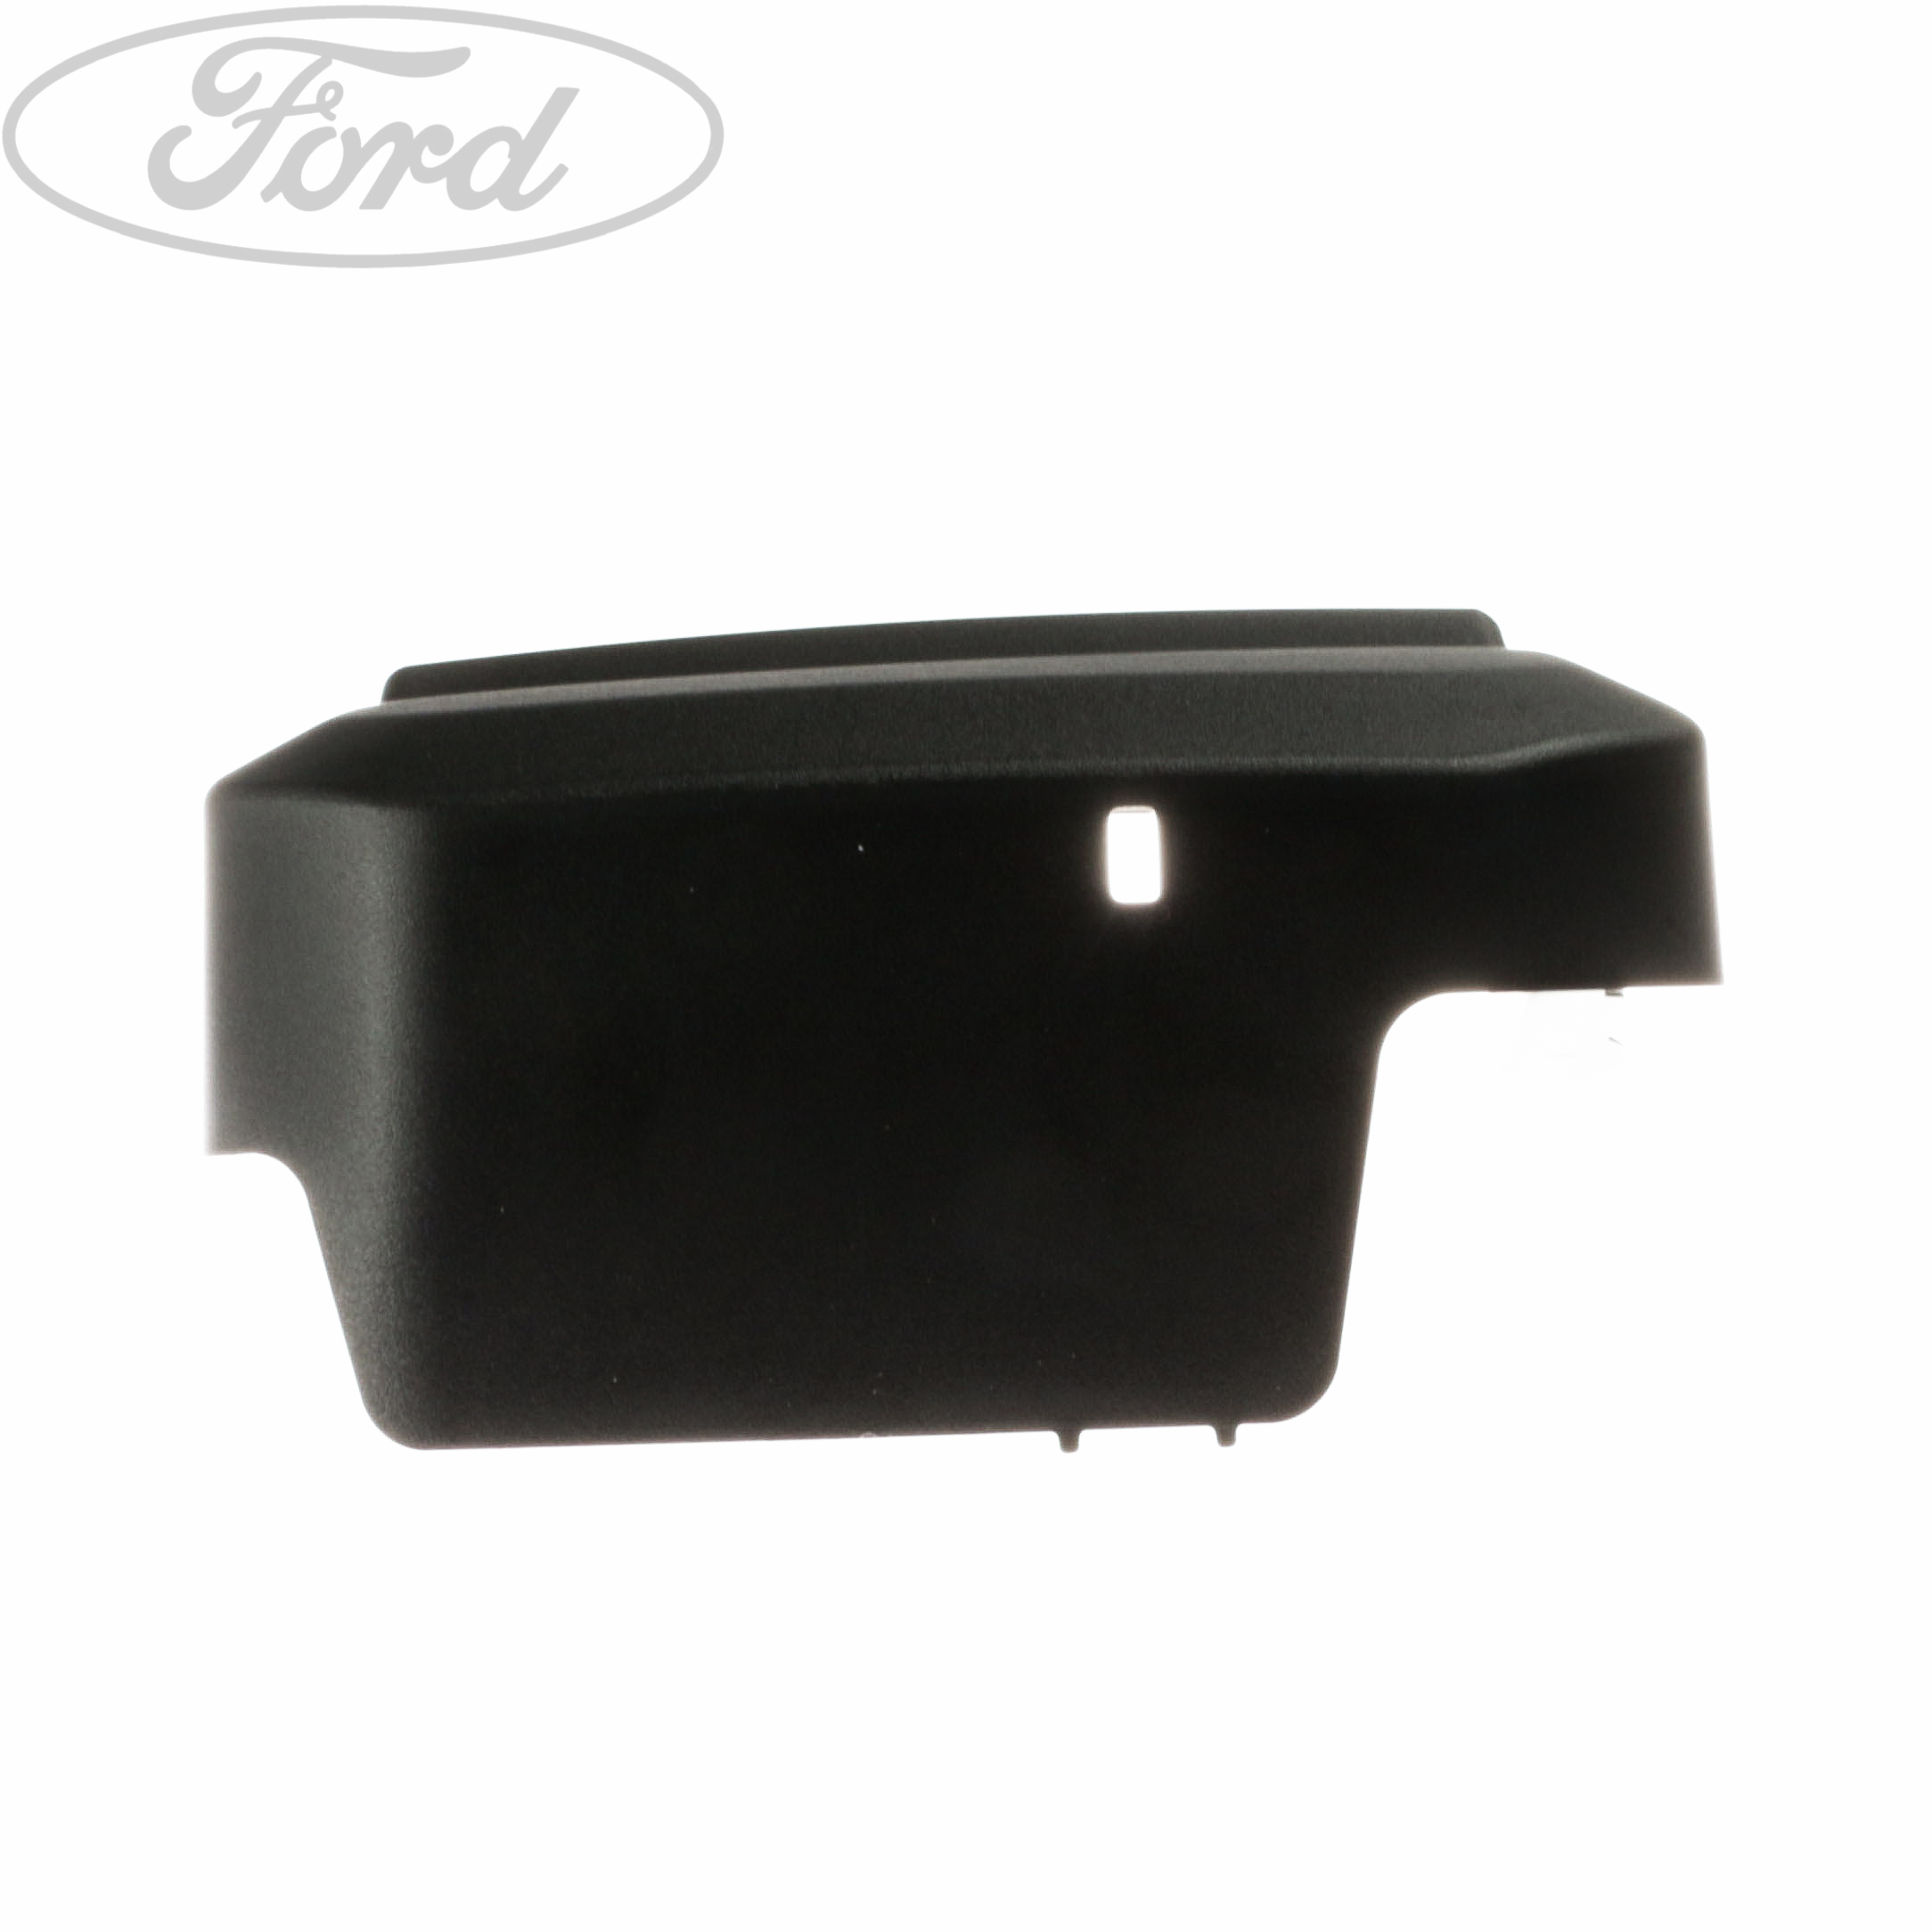 genuine ford focus mk ii focus c max mpv battery cover 1424281 ebay. Black Bedroom Furniture Sets. Home Design Ideas